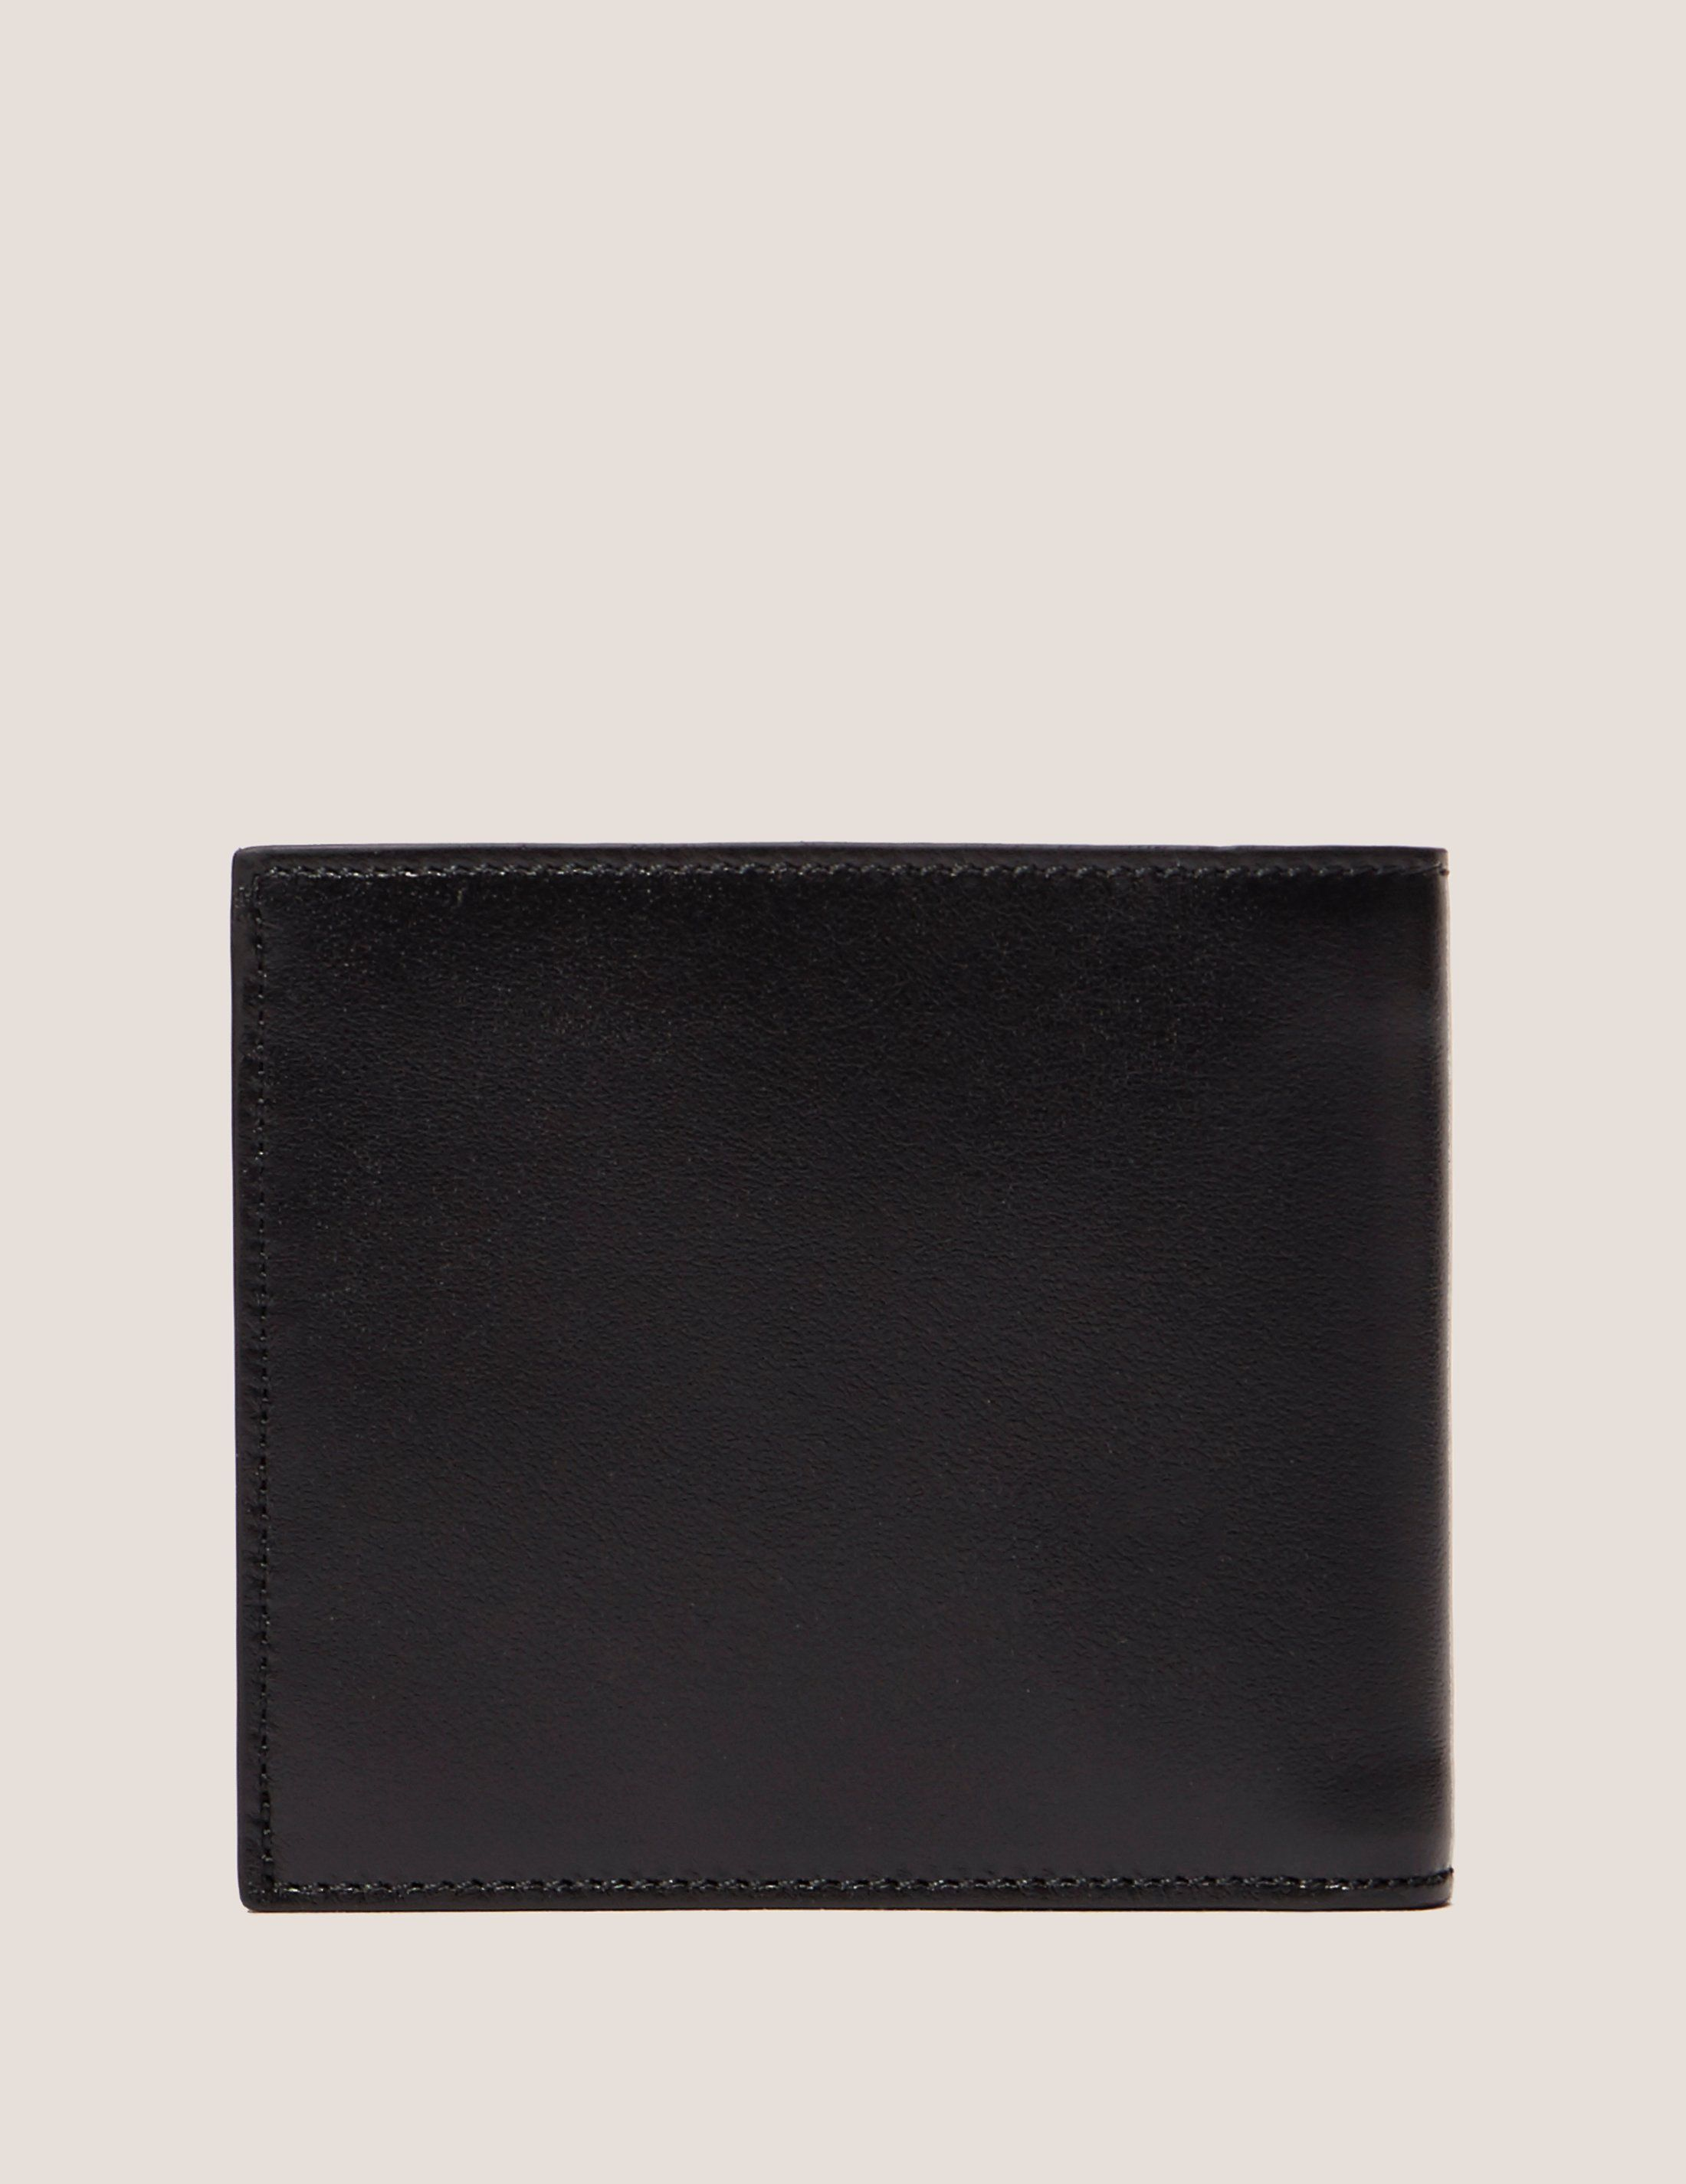 Paul Smith Accent Billfold Wallet